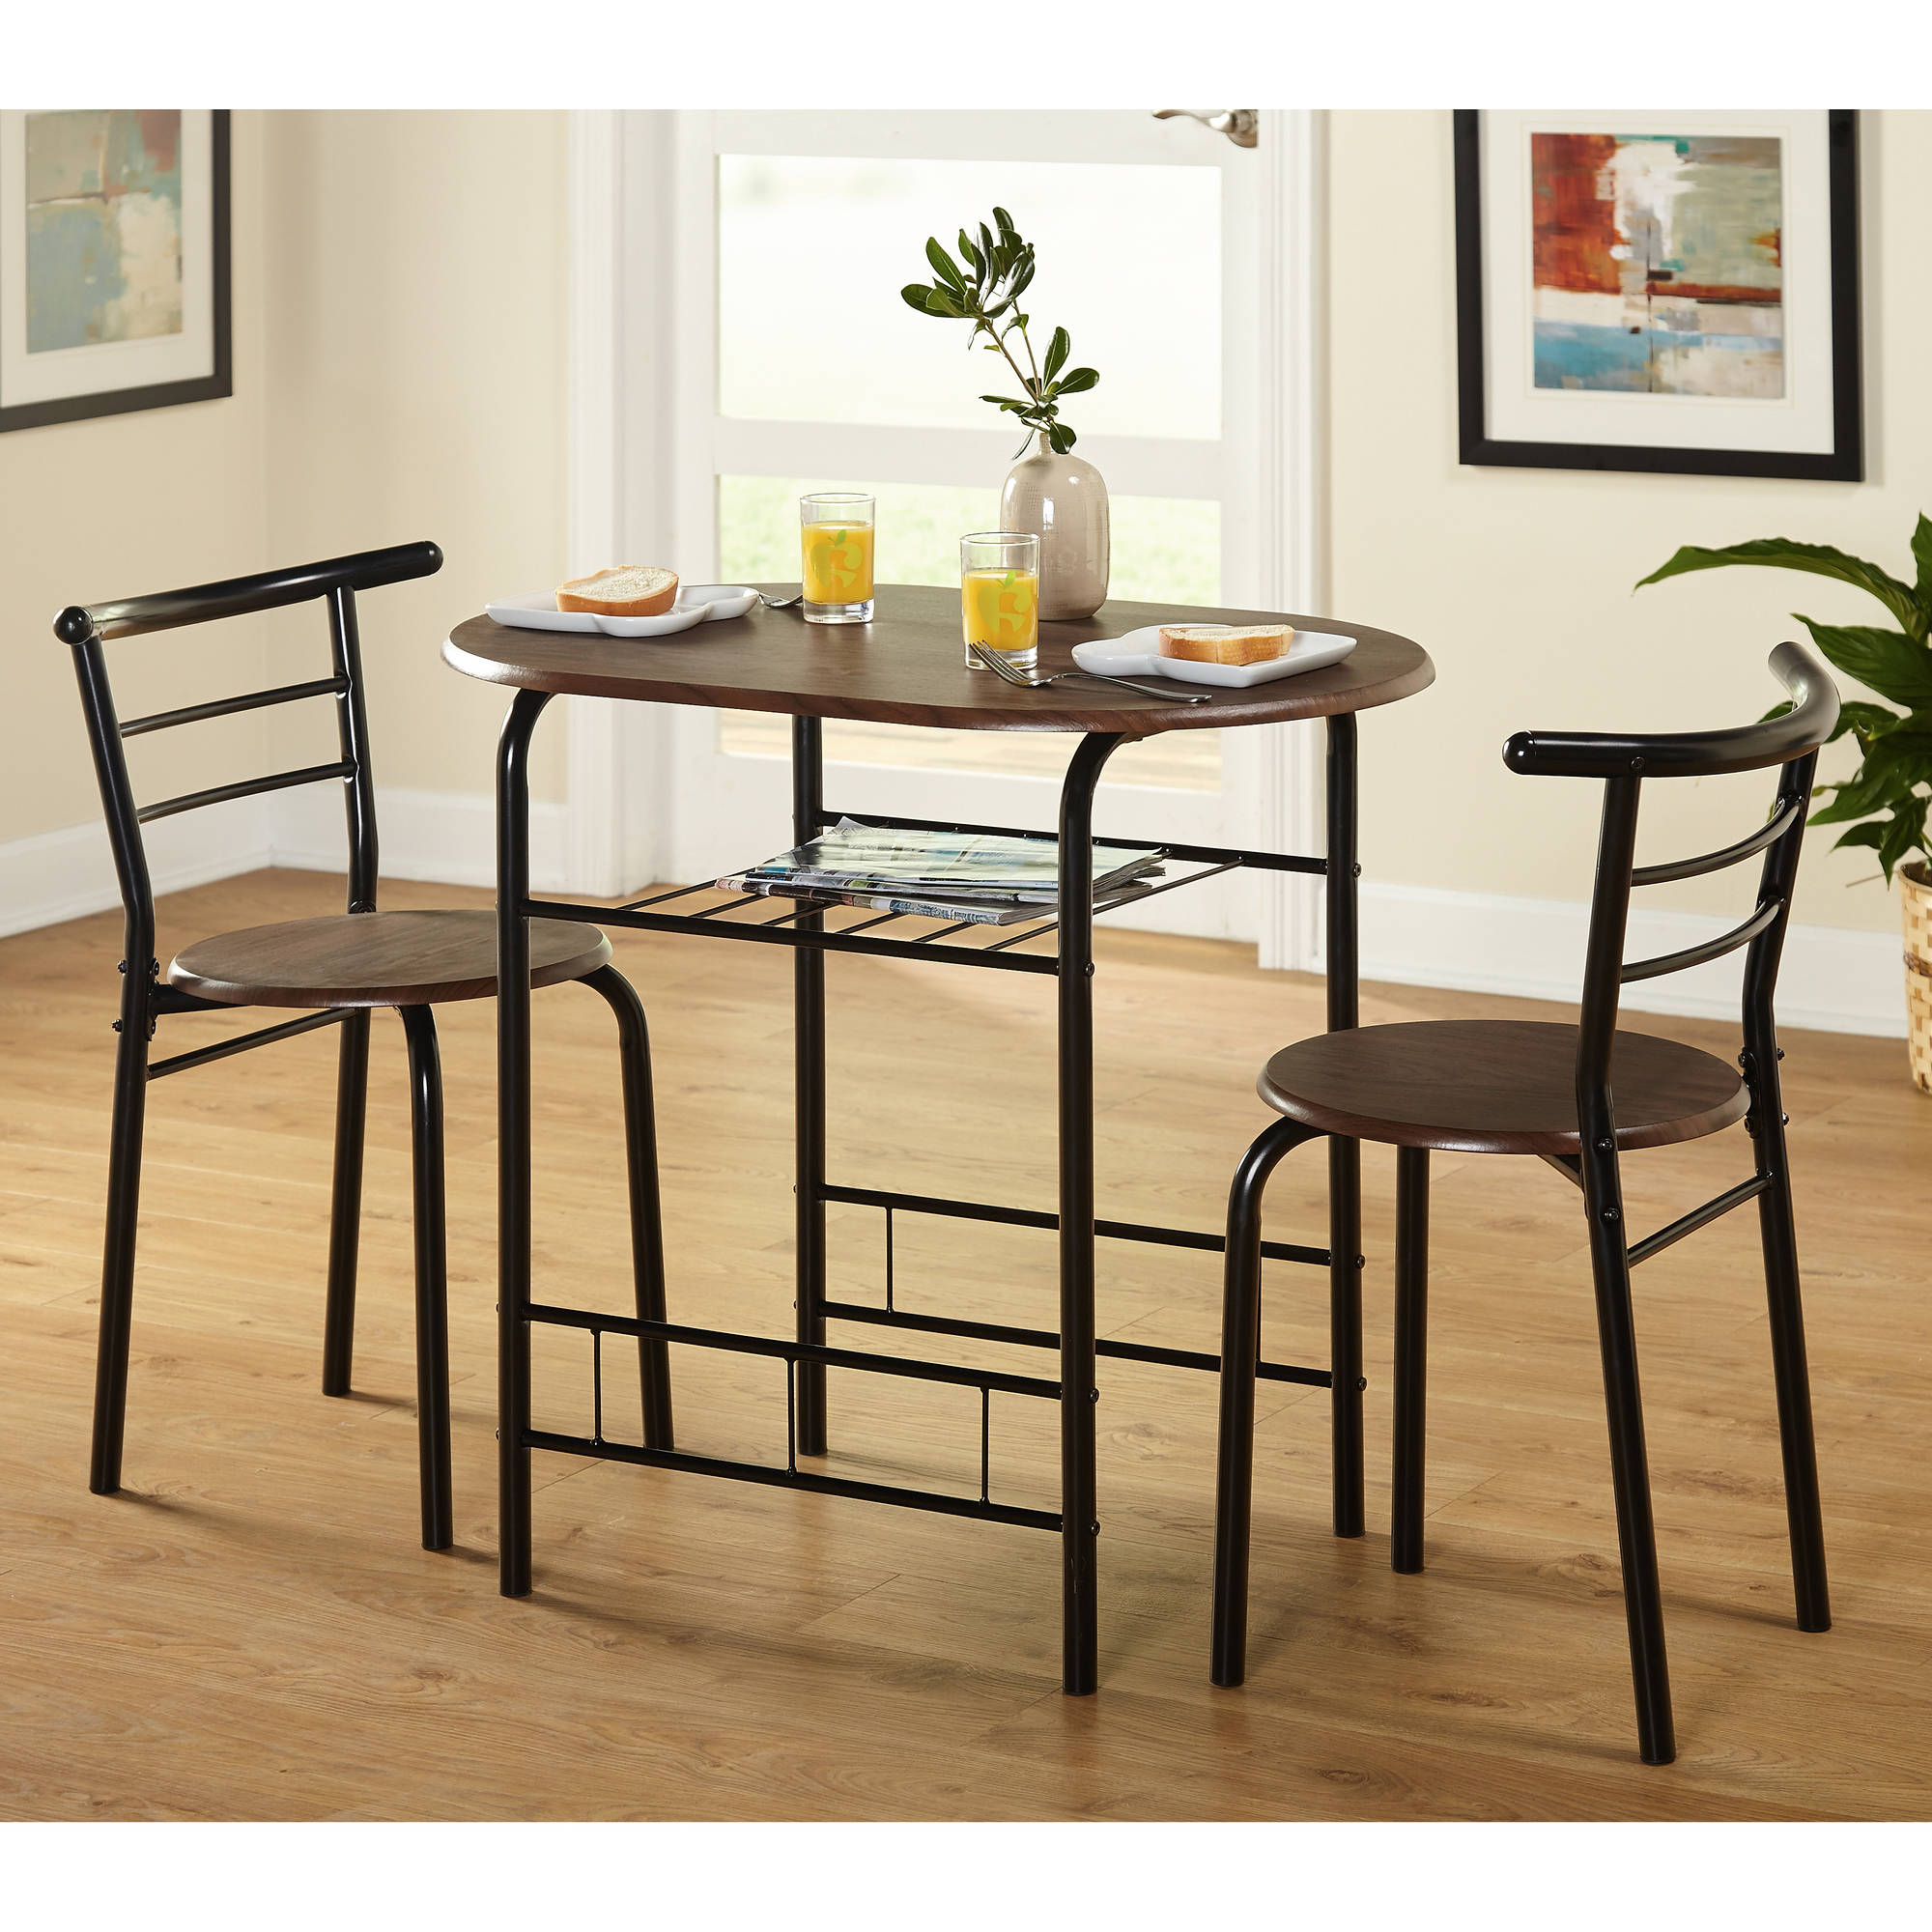 Tms 3 Piece Bistro Dining Set – Walmart Regarding Favorite 3 Piece Dining Sets (View 5 of 25)